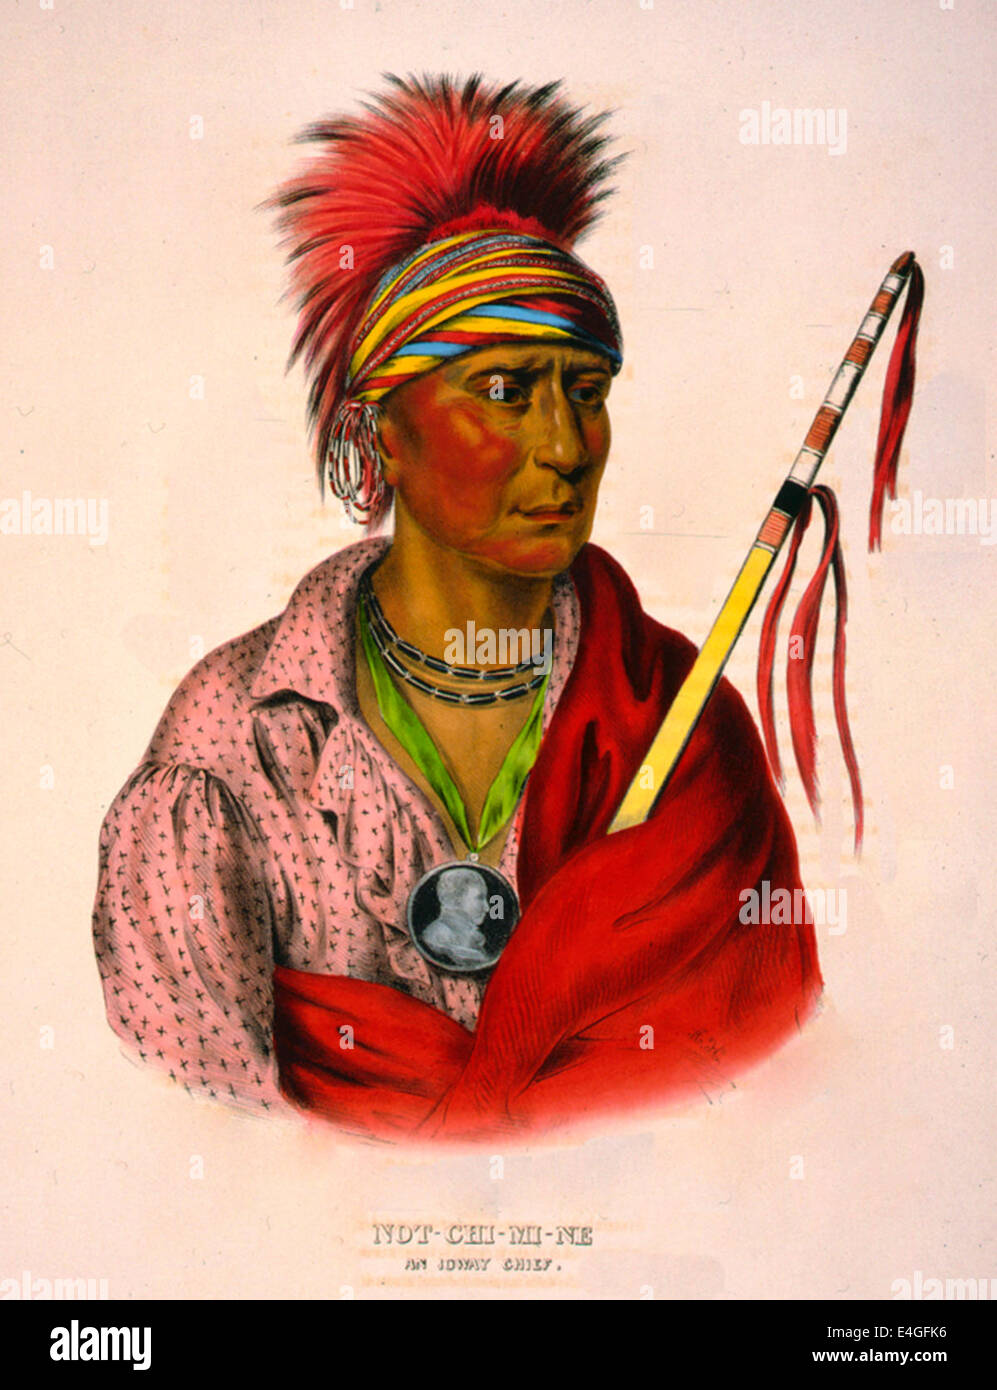 Not-Chi-Mi-Ne an Ioway chief - Not-Chi-Mi-Ne, head-and-shoulders portrait, facing right, wearing earrings and a - Stock Image